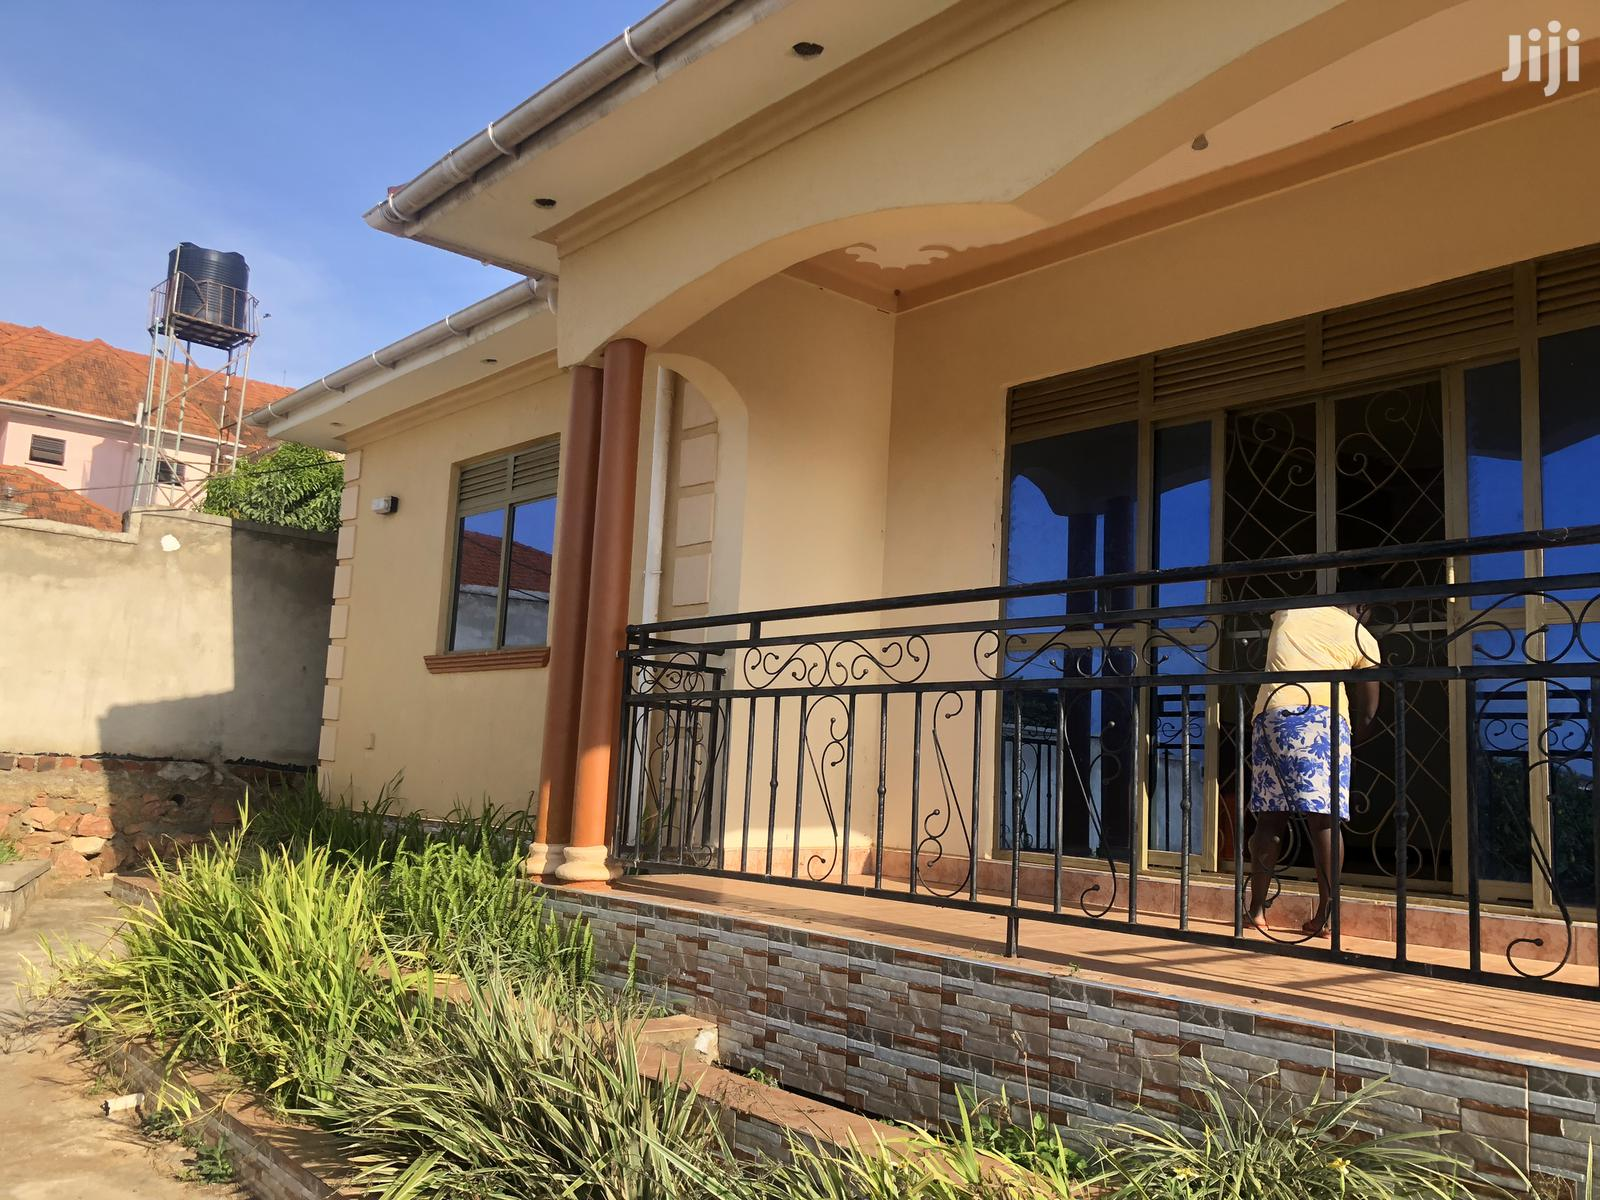 Three Bedroom House In Kawuku For Sale | Houses & Apartments For Sale for sale in Kampala, Central Region, Uganda